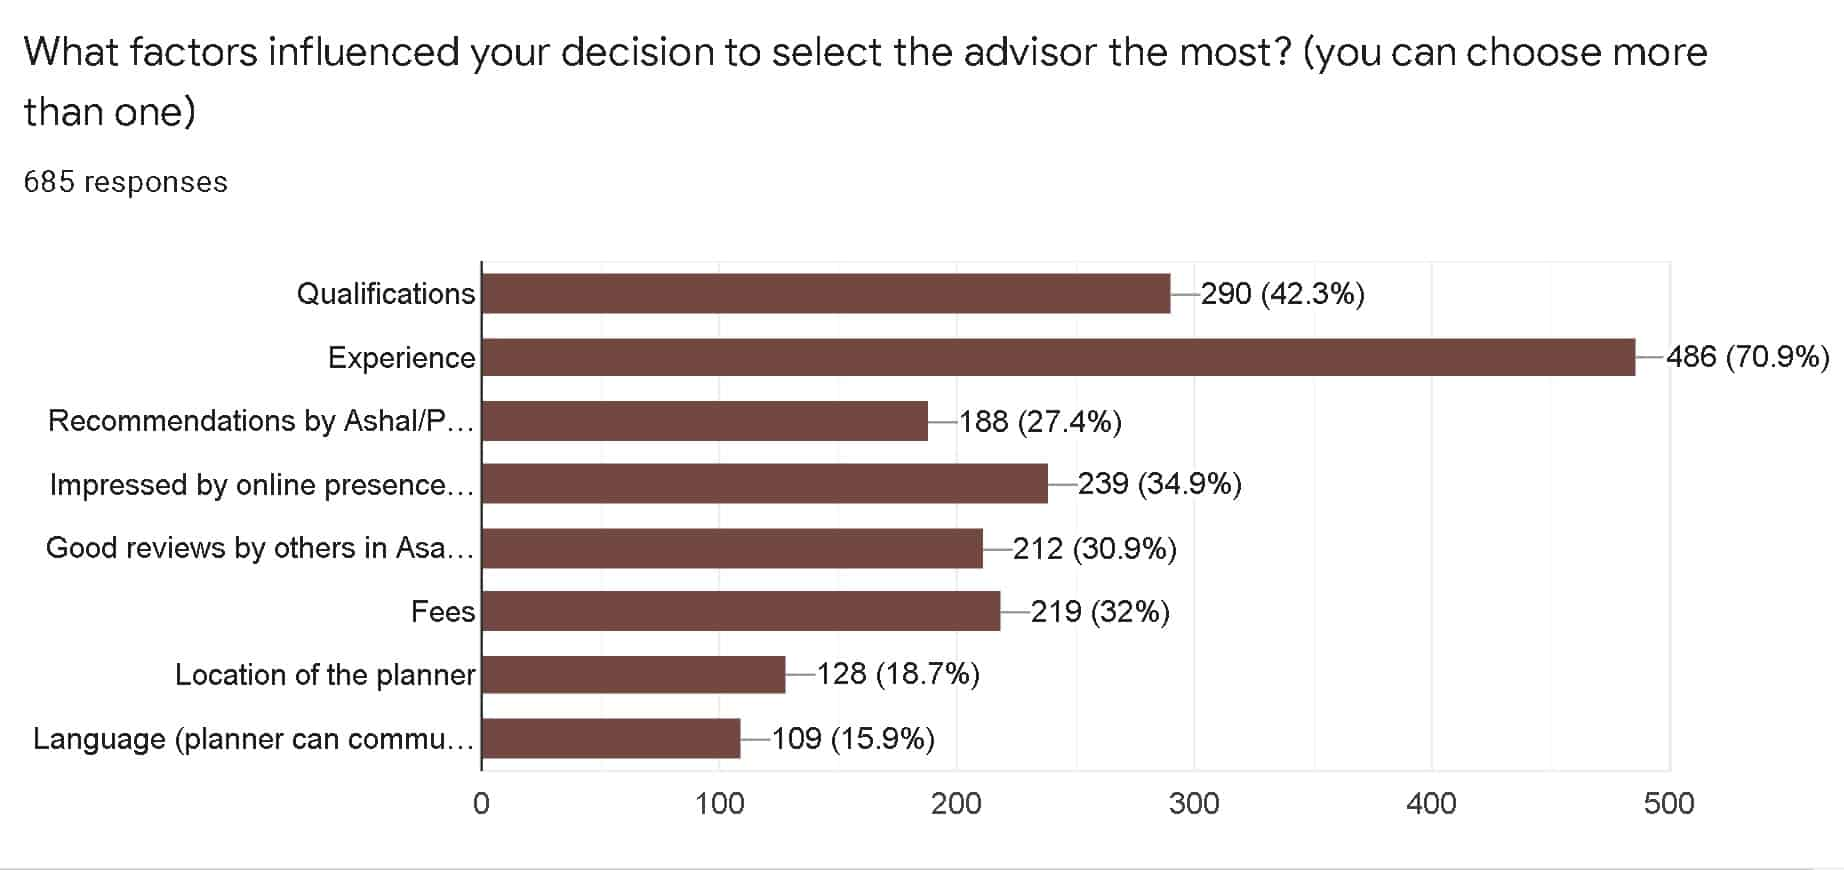 What factors influenced your decision to select the advisor the most